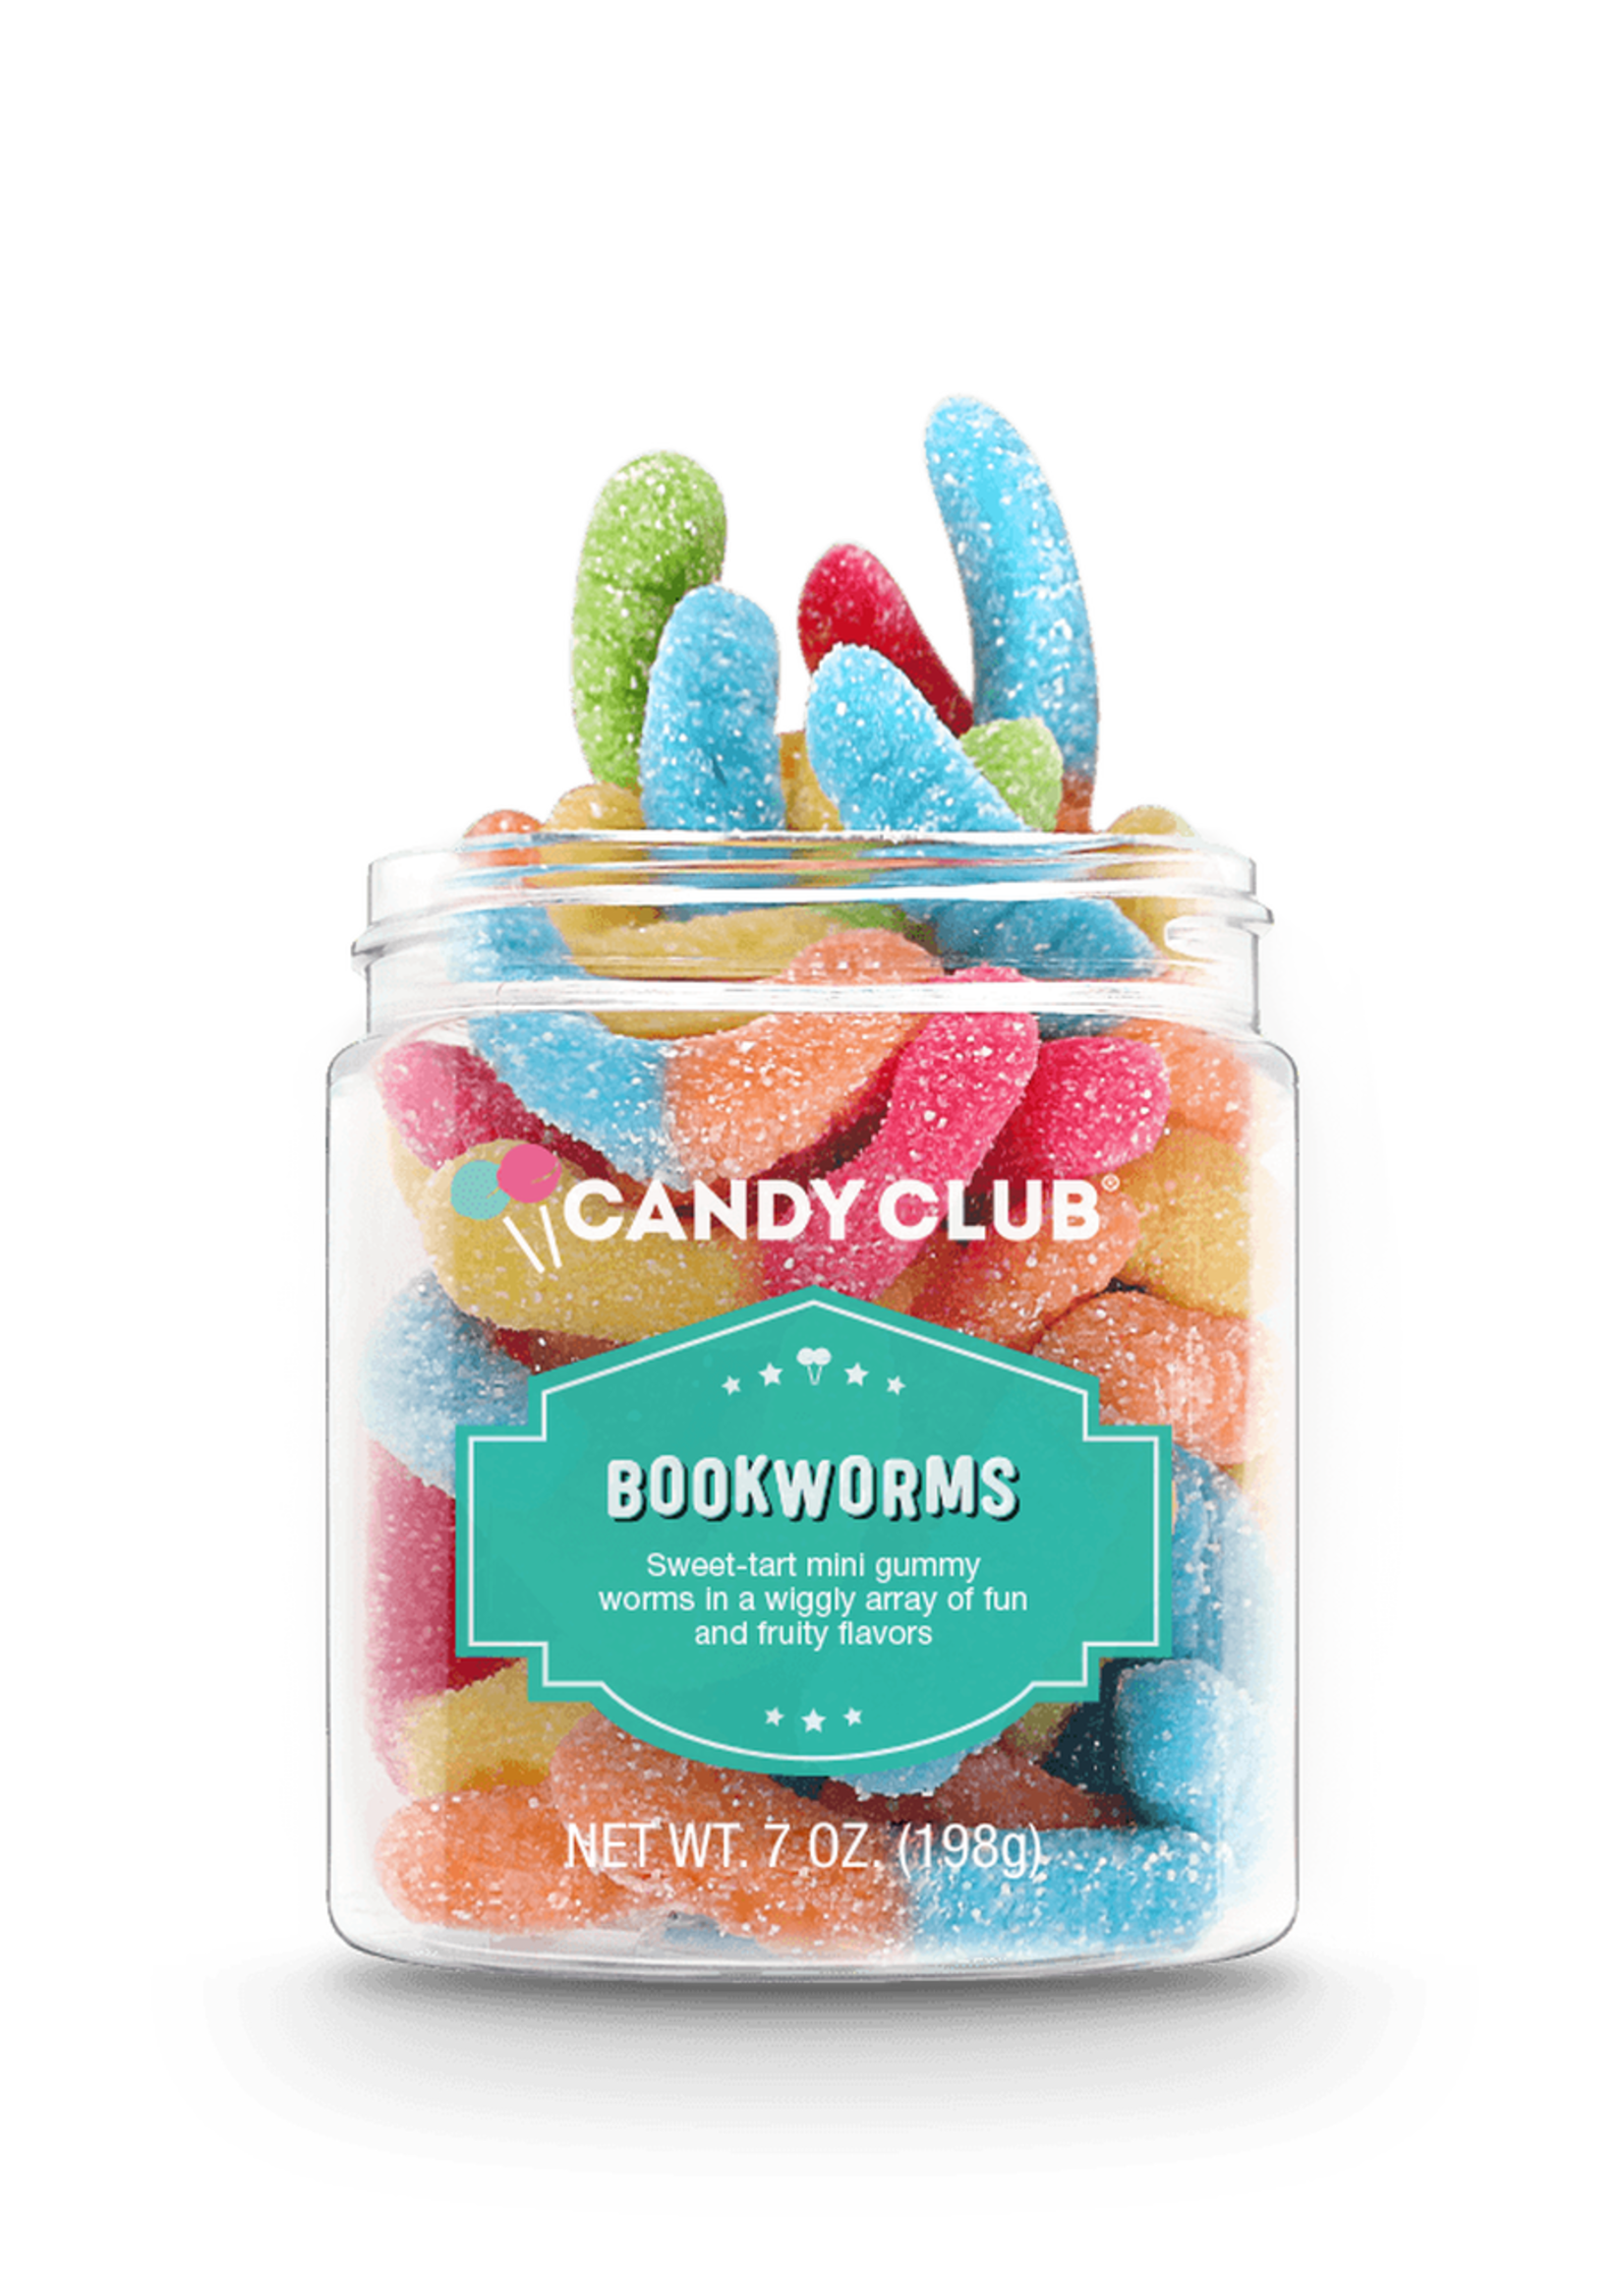 Bookworms Candy